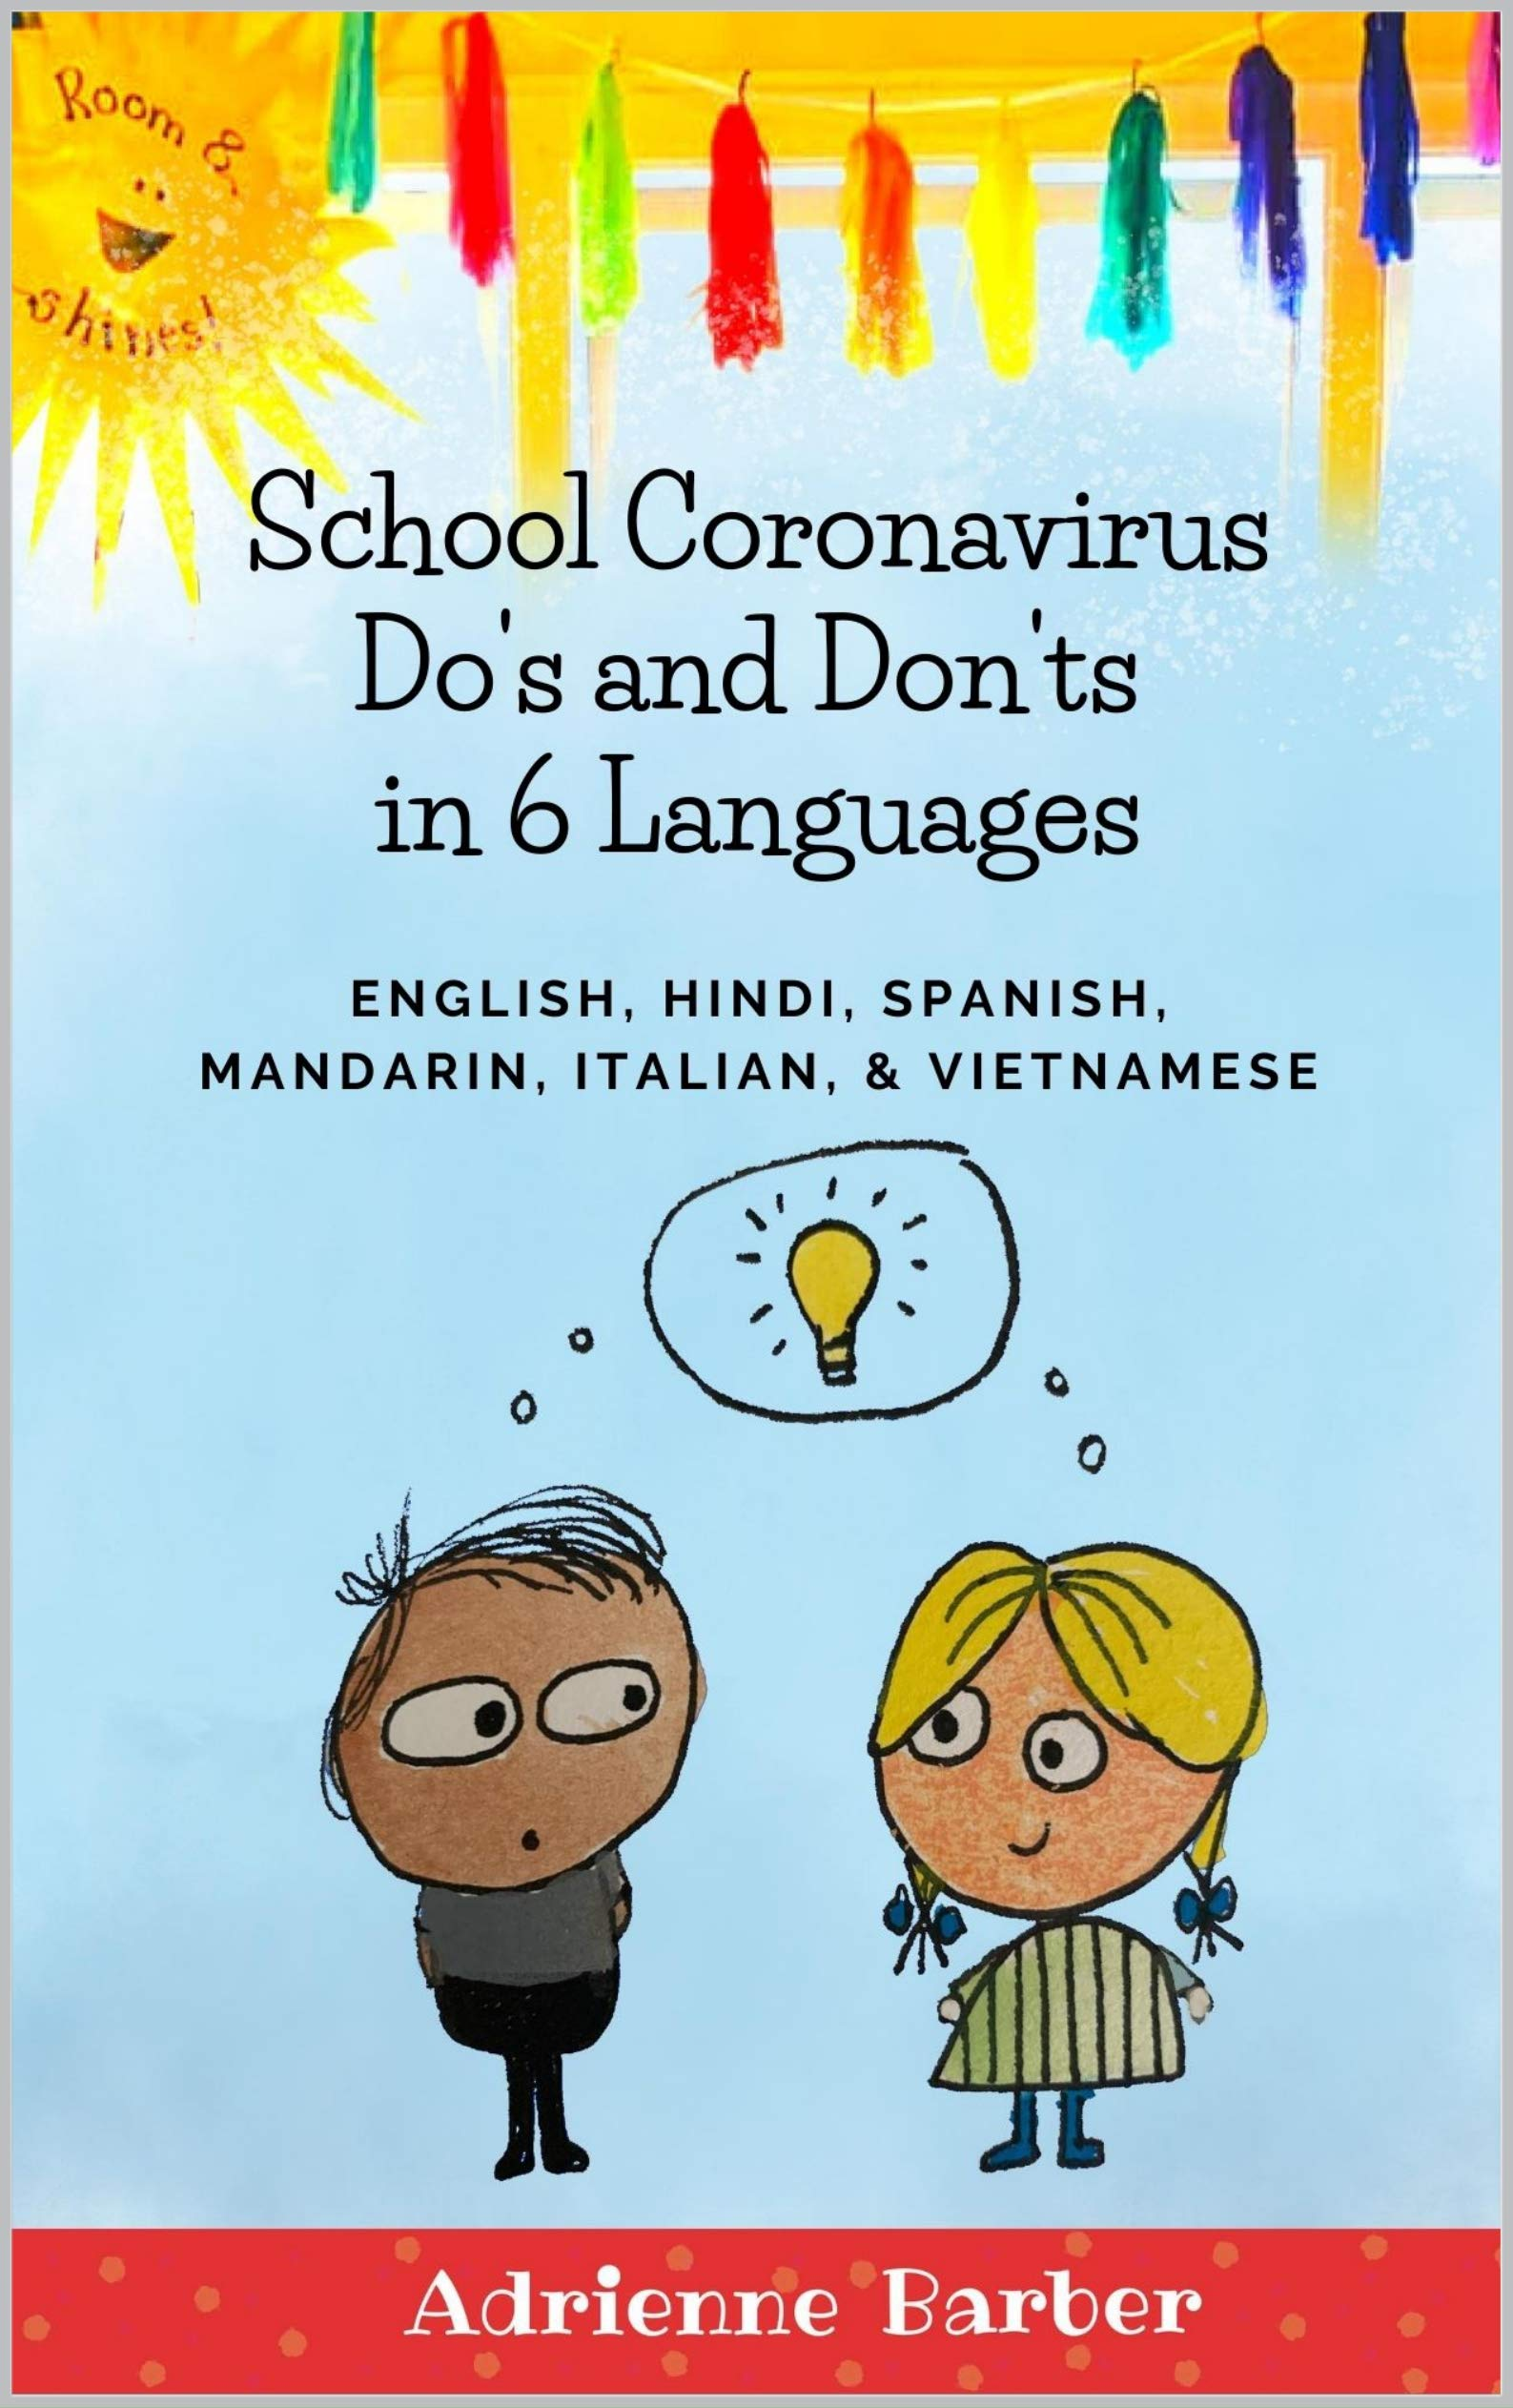 Image OfSchool Coronavirus Do's And Don'ts In 6 Languages: Written In English, Hindi, Spanish, Mandarin Chinese, Italian, And Viet...